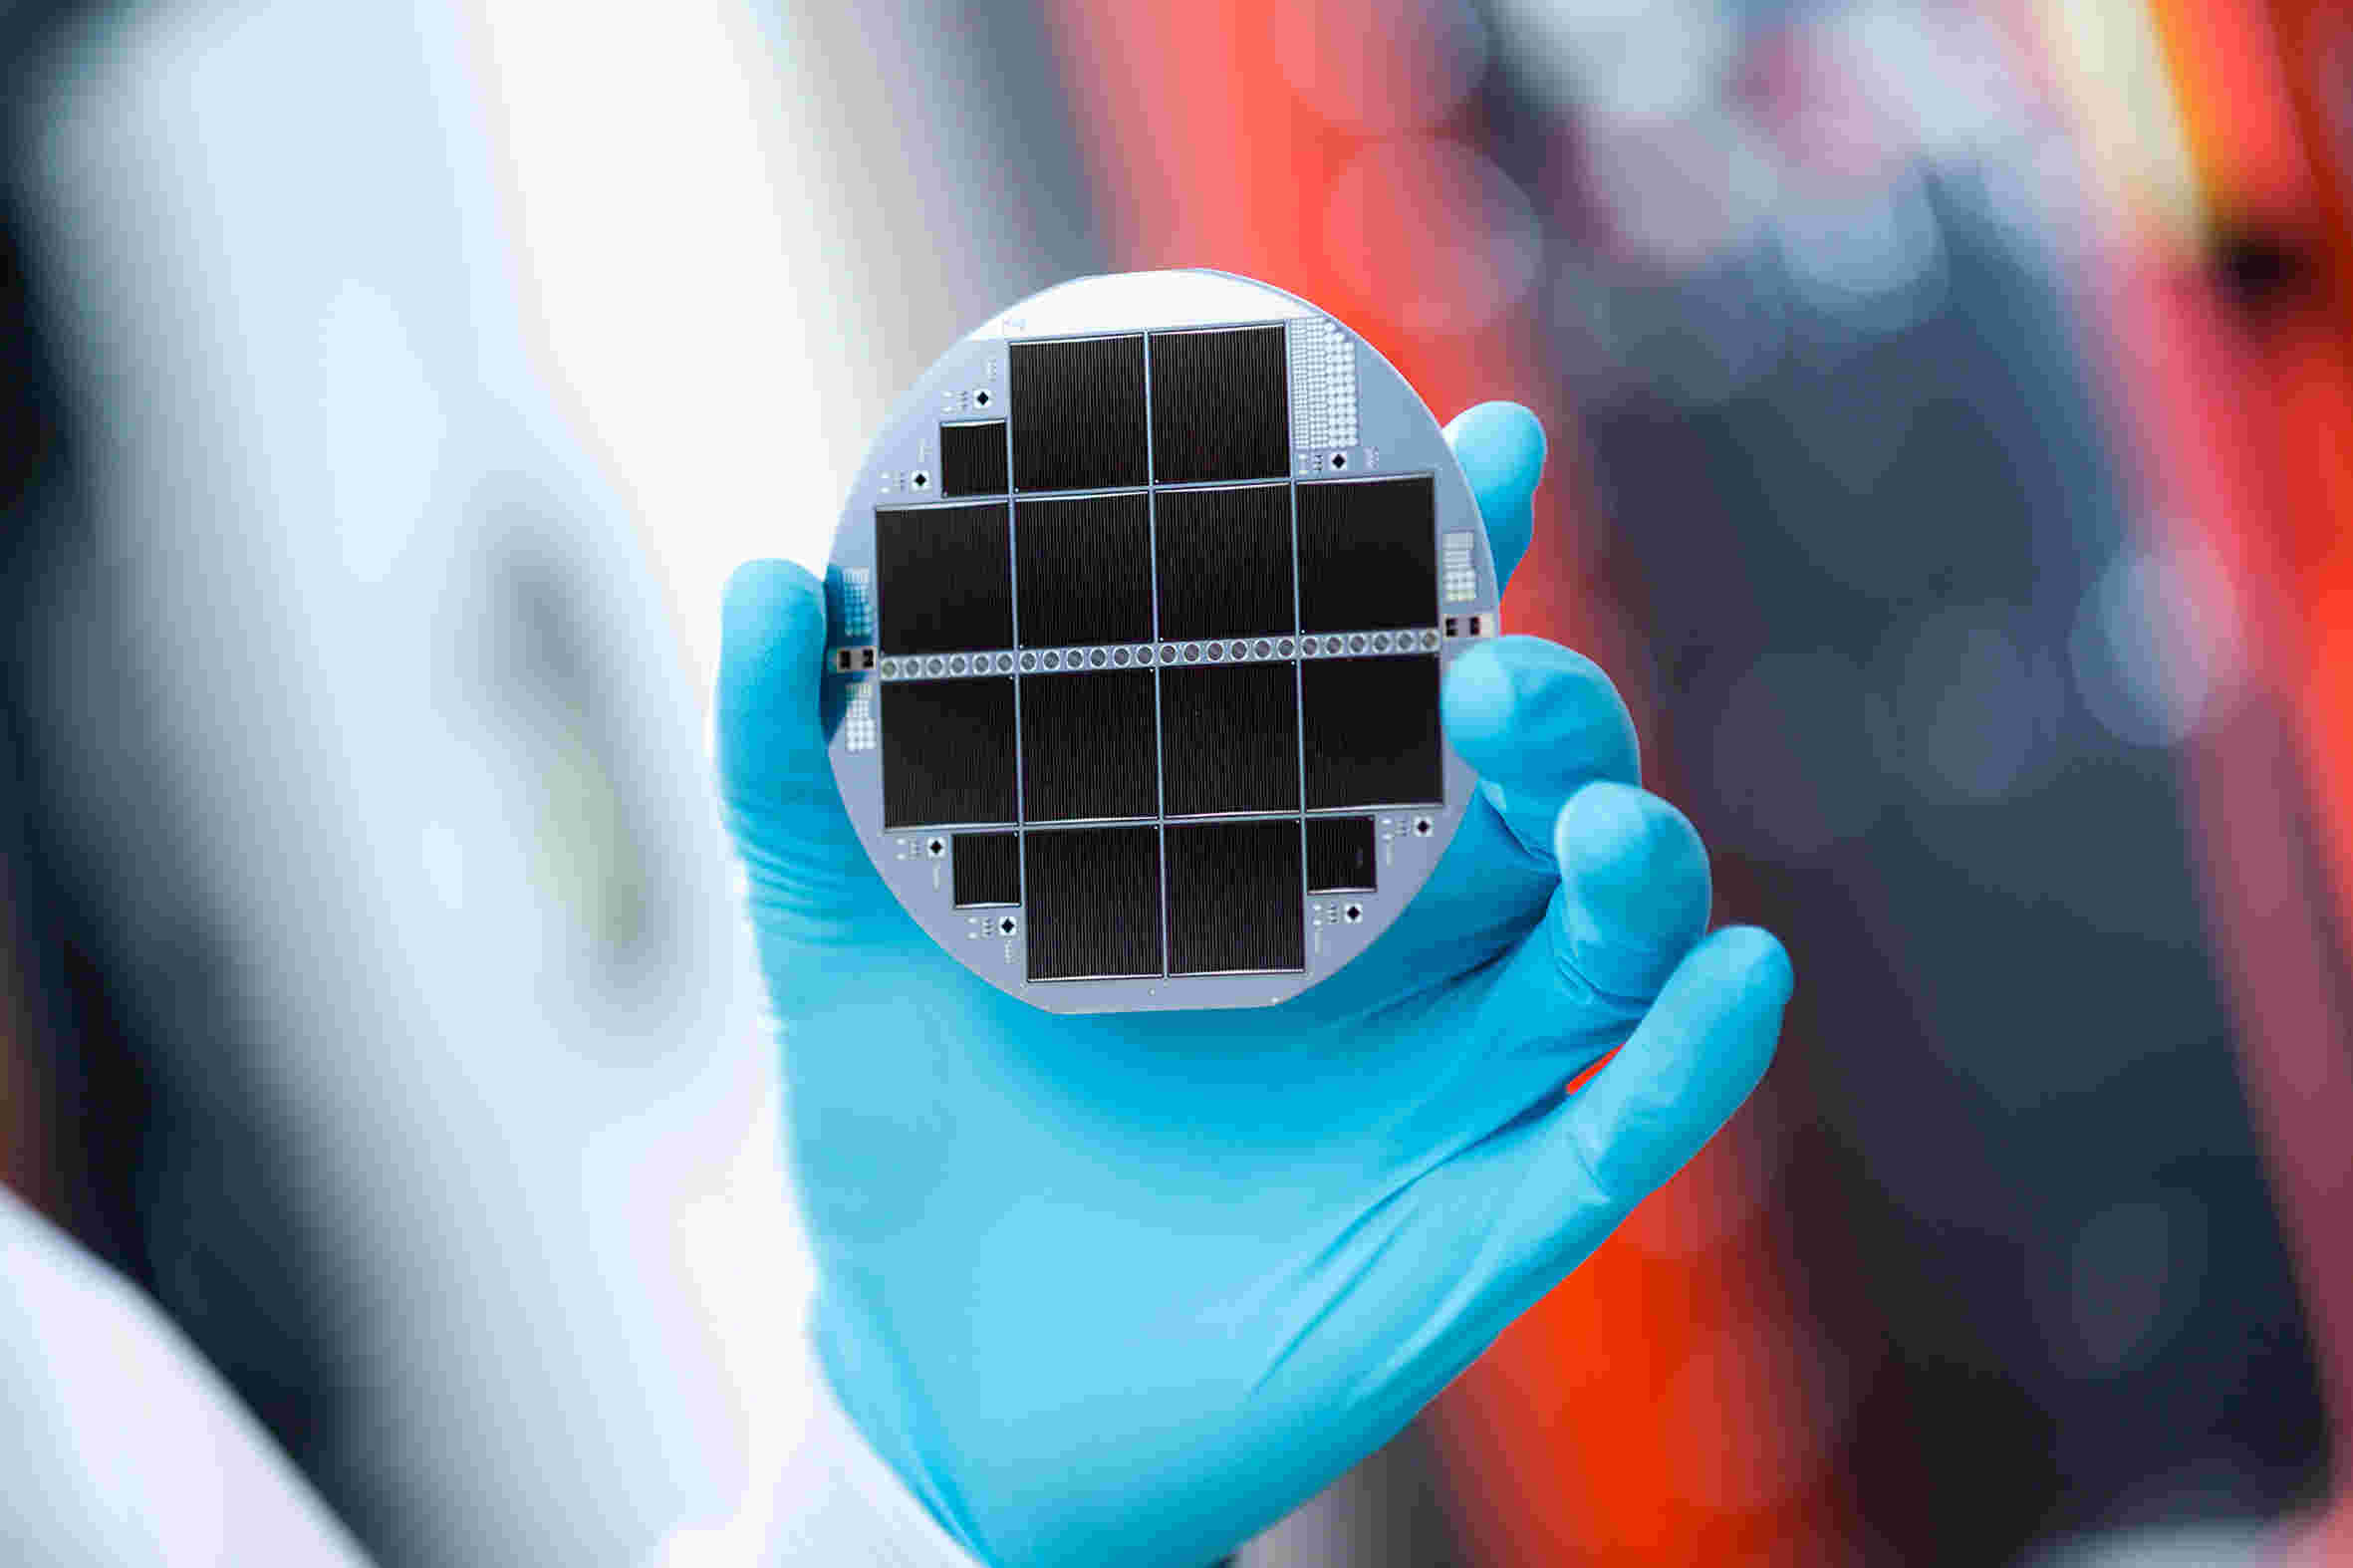 Silicon-based multi-junction solar cell consisting of III-V semiconductors and silicon. The record cell converts 33.3. percent of the incident sunlight into electricity.  © Fraunhofer ISE / Photo: Dirk Mahler